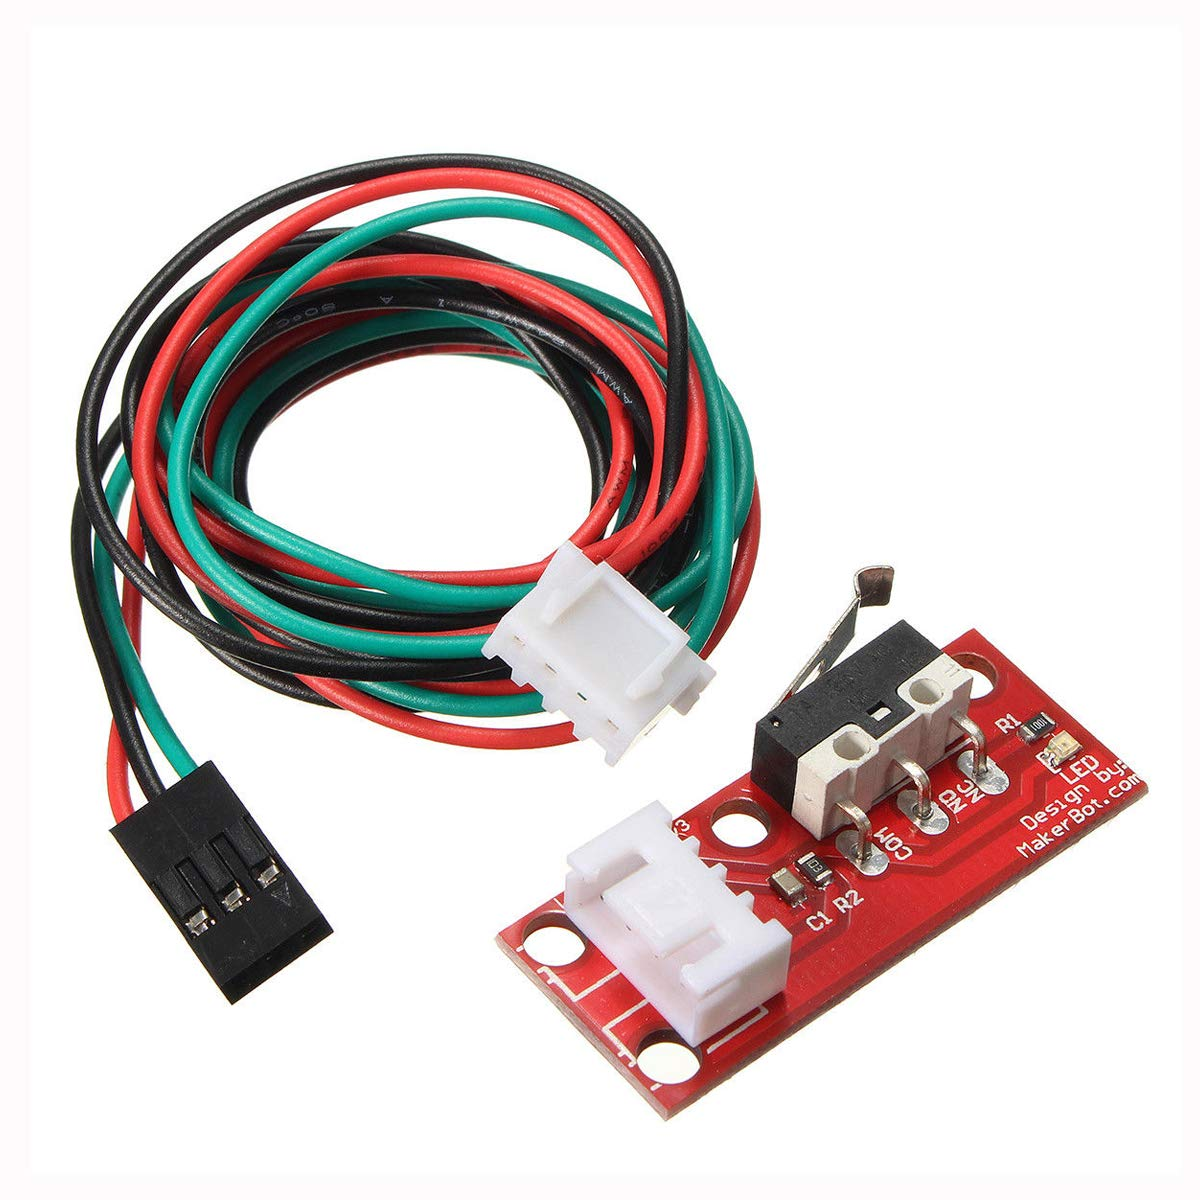 TM 5 x Mechanical Endstop End Stop w//Wires Limit Switches with 22WAG Cable for 3D Printer Makerbot Prusa Mendel RepRap CNC Arduino RAMPS 1.4 CHENBO